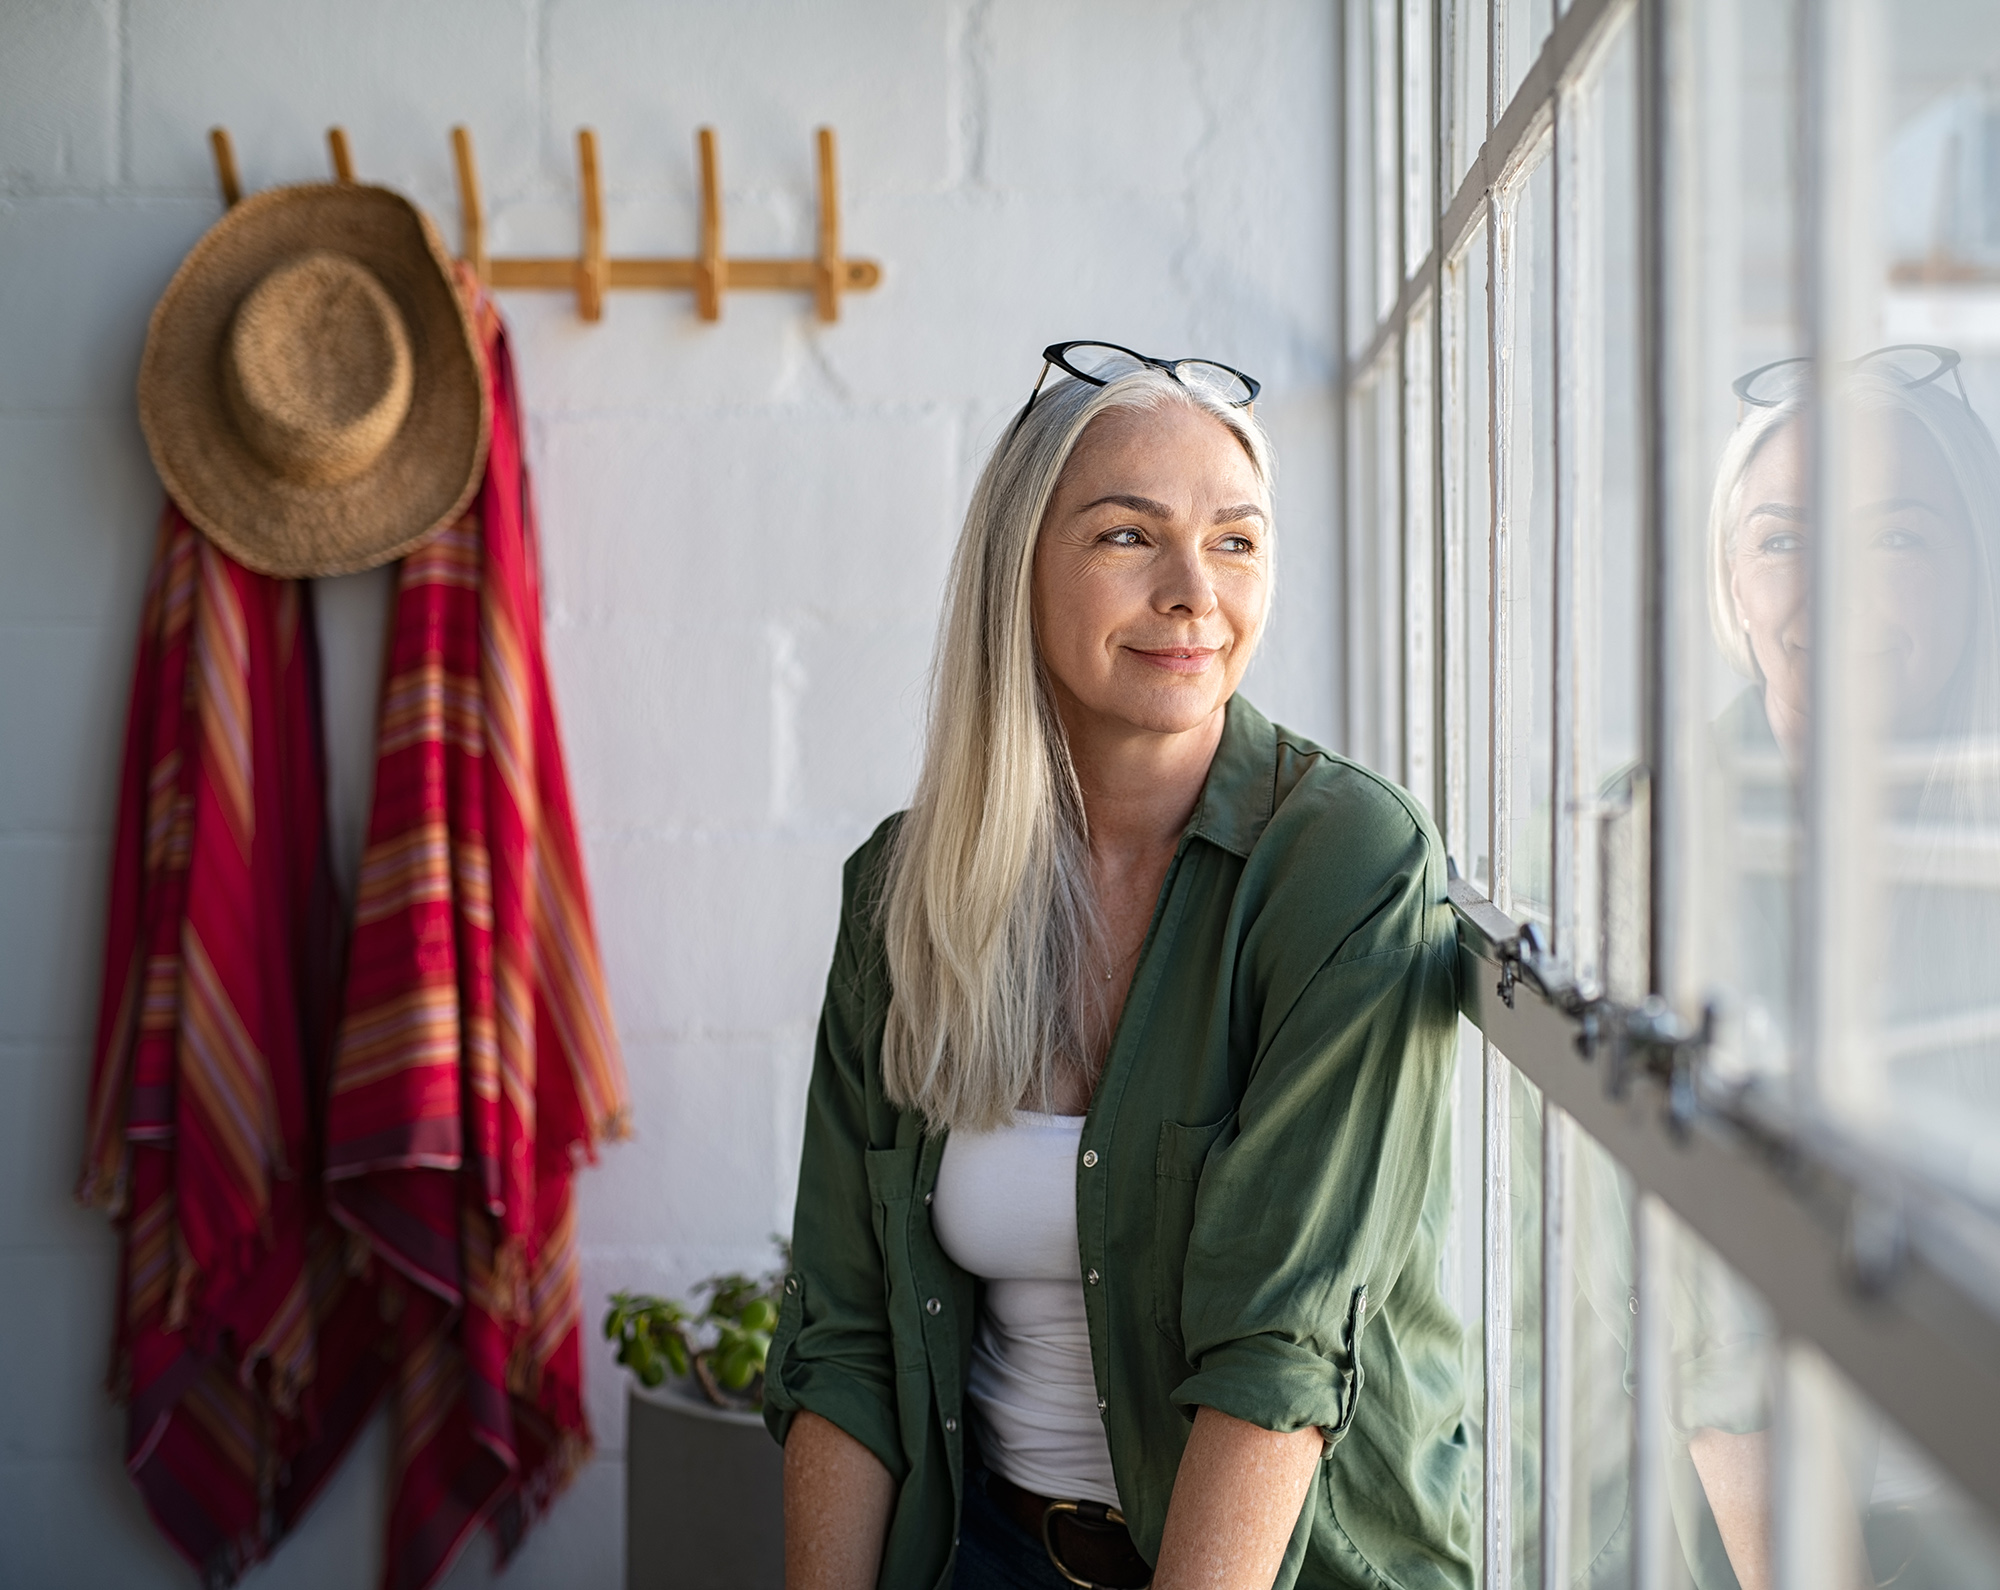 Smiling mature woman looking outside window with a pained expression. Find relief with divorce counseling near katy, tx. Divorce recovery in katy, tx can help you live again. If you need help healing from divorce in katy, tx call now!